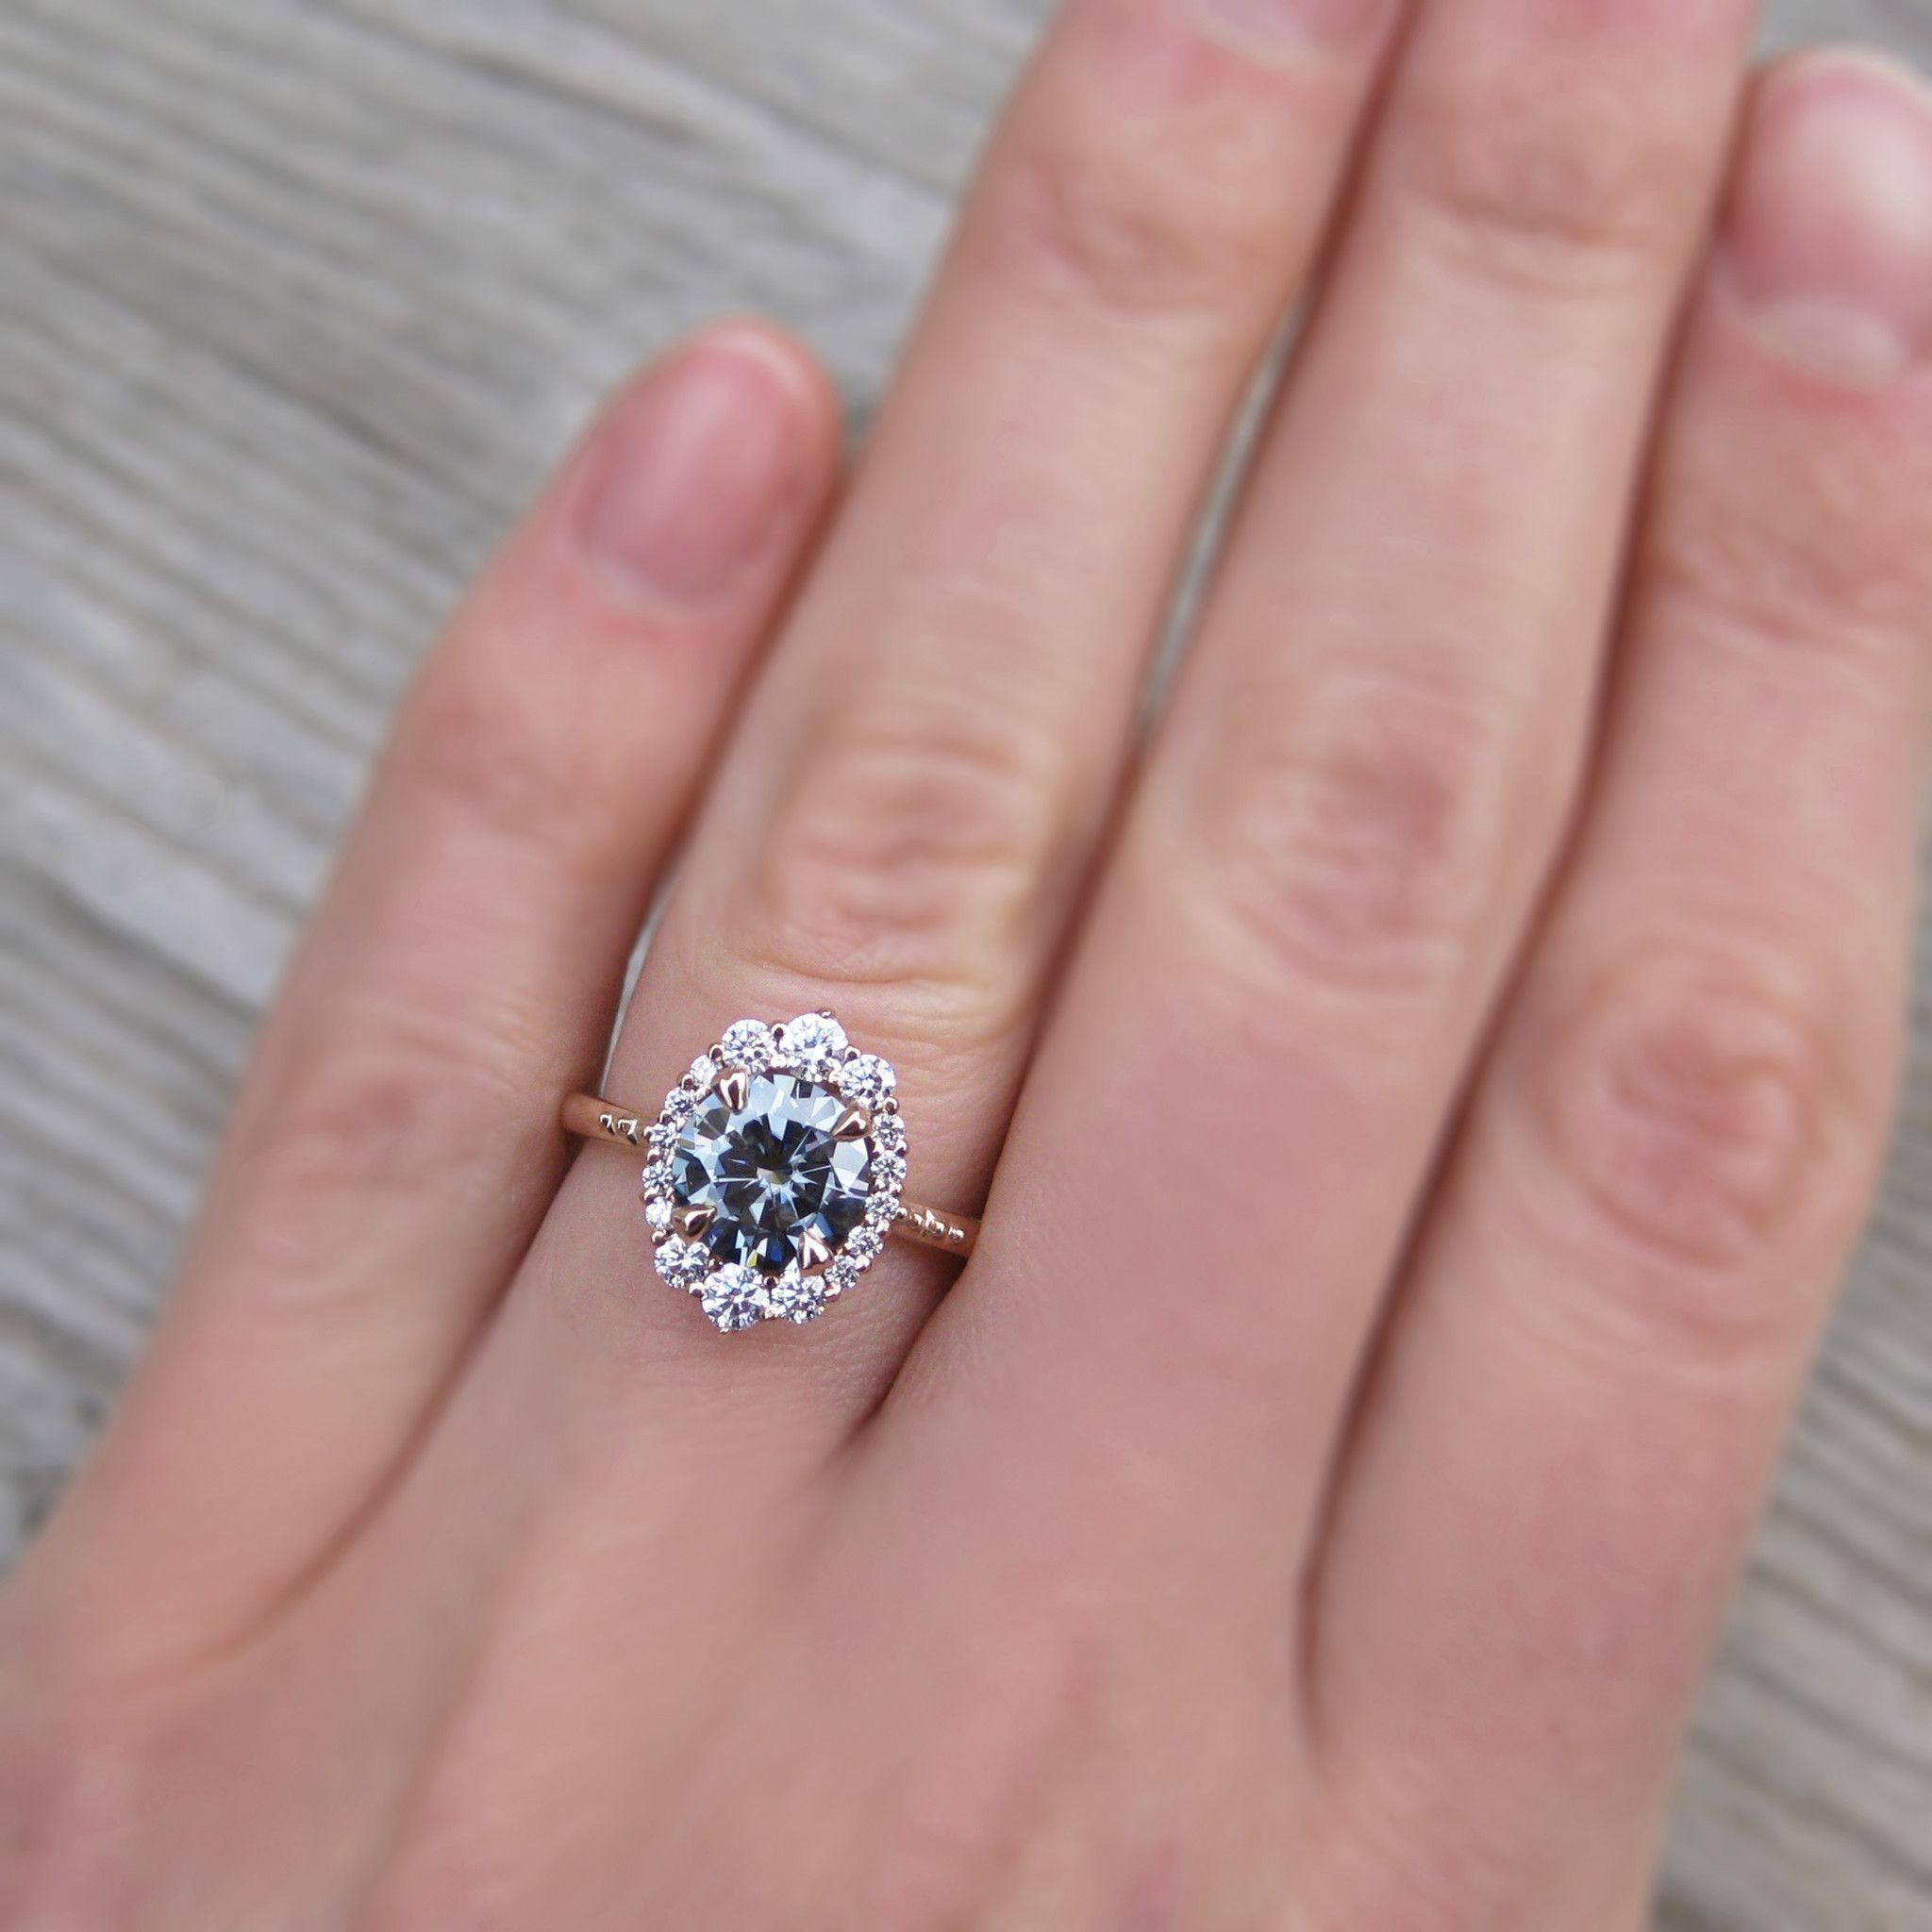 Dark Grey Moissanite Engagement Ring with Diamond Halo (1.58ct ...